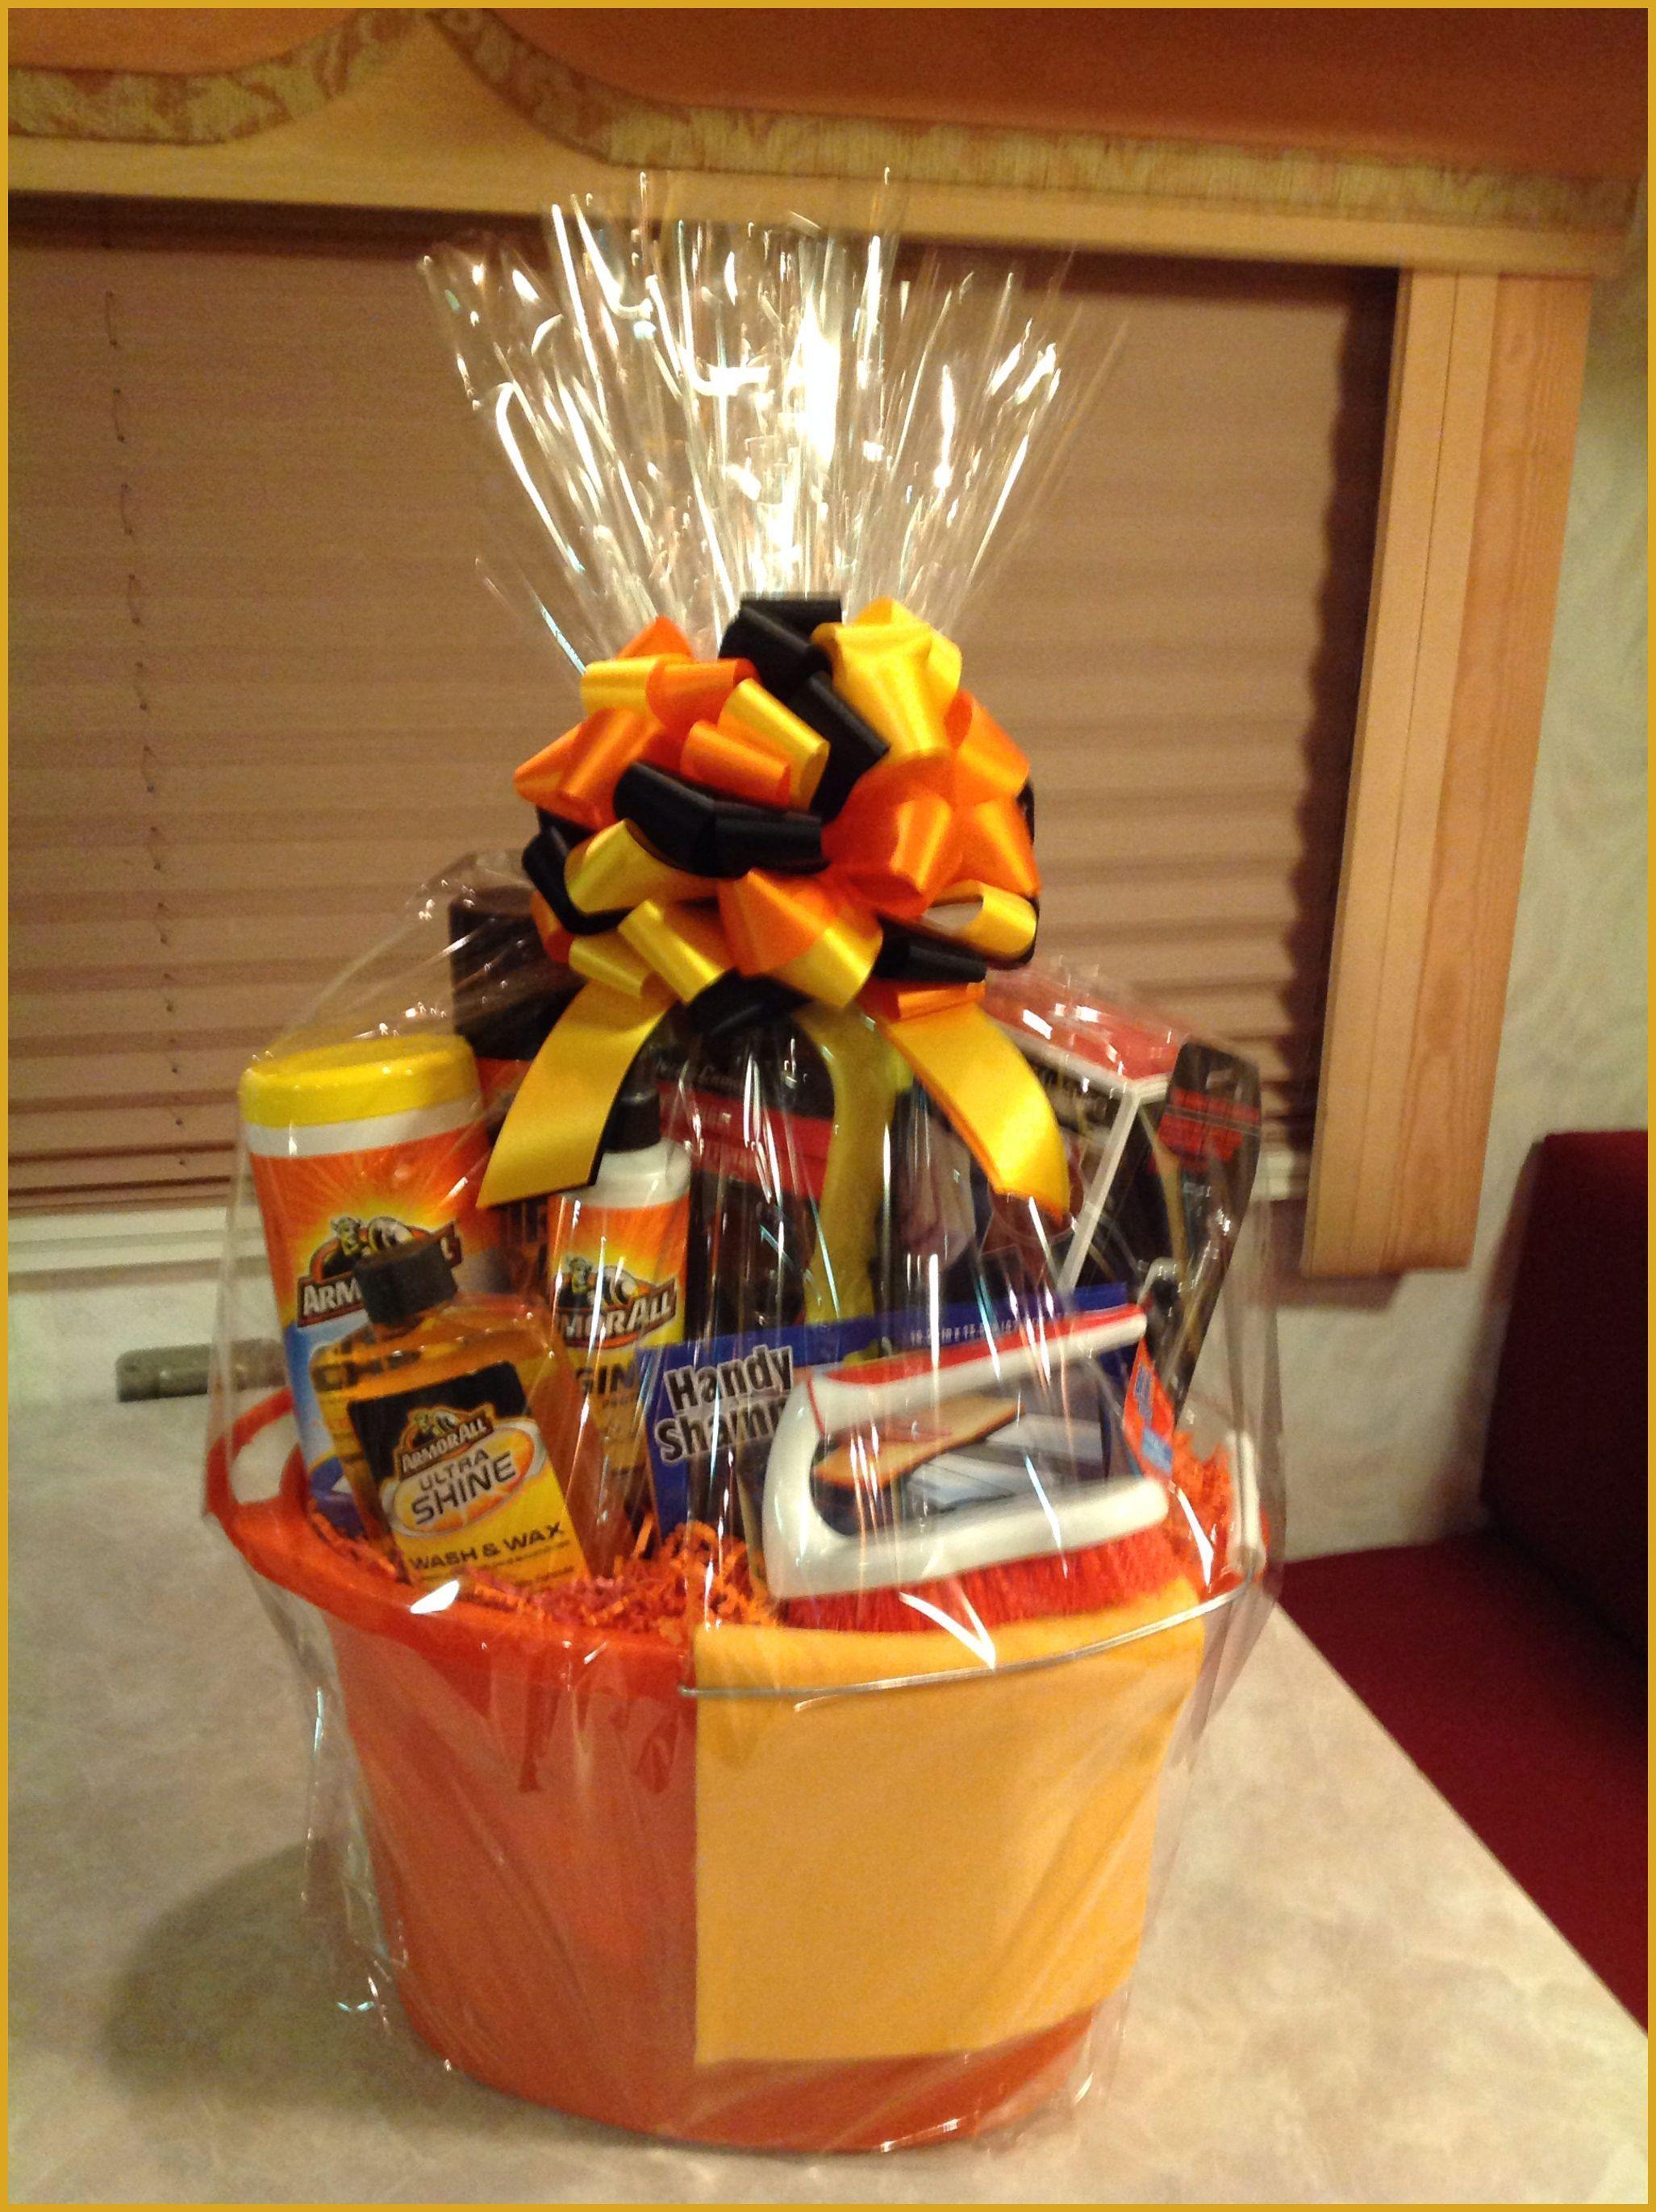 Golf gift baskets top gifts for men learn more by